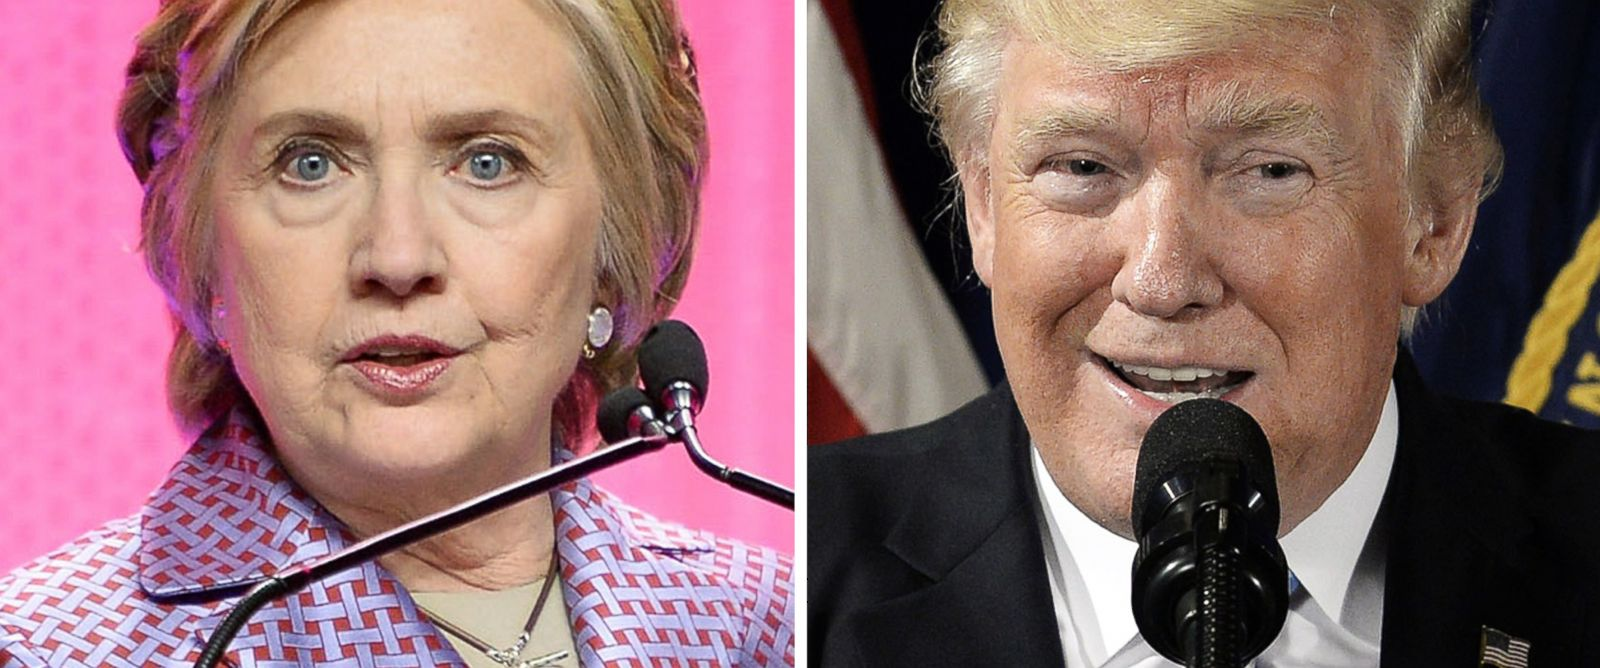 PHOTO: Hillary Clinton speaks on May 2, 2017 in New York and Donald Trump speaks on April 27 in Washington.